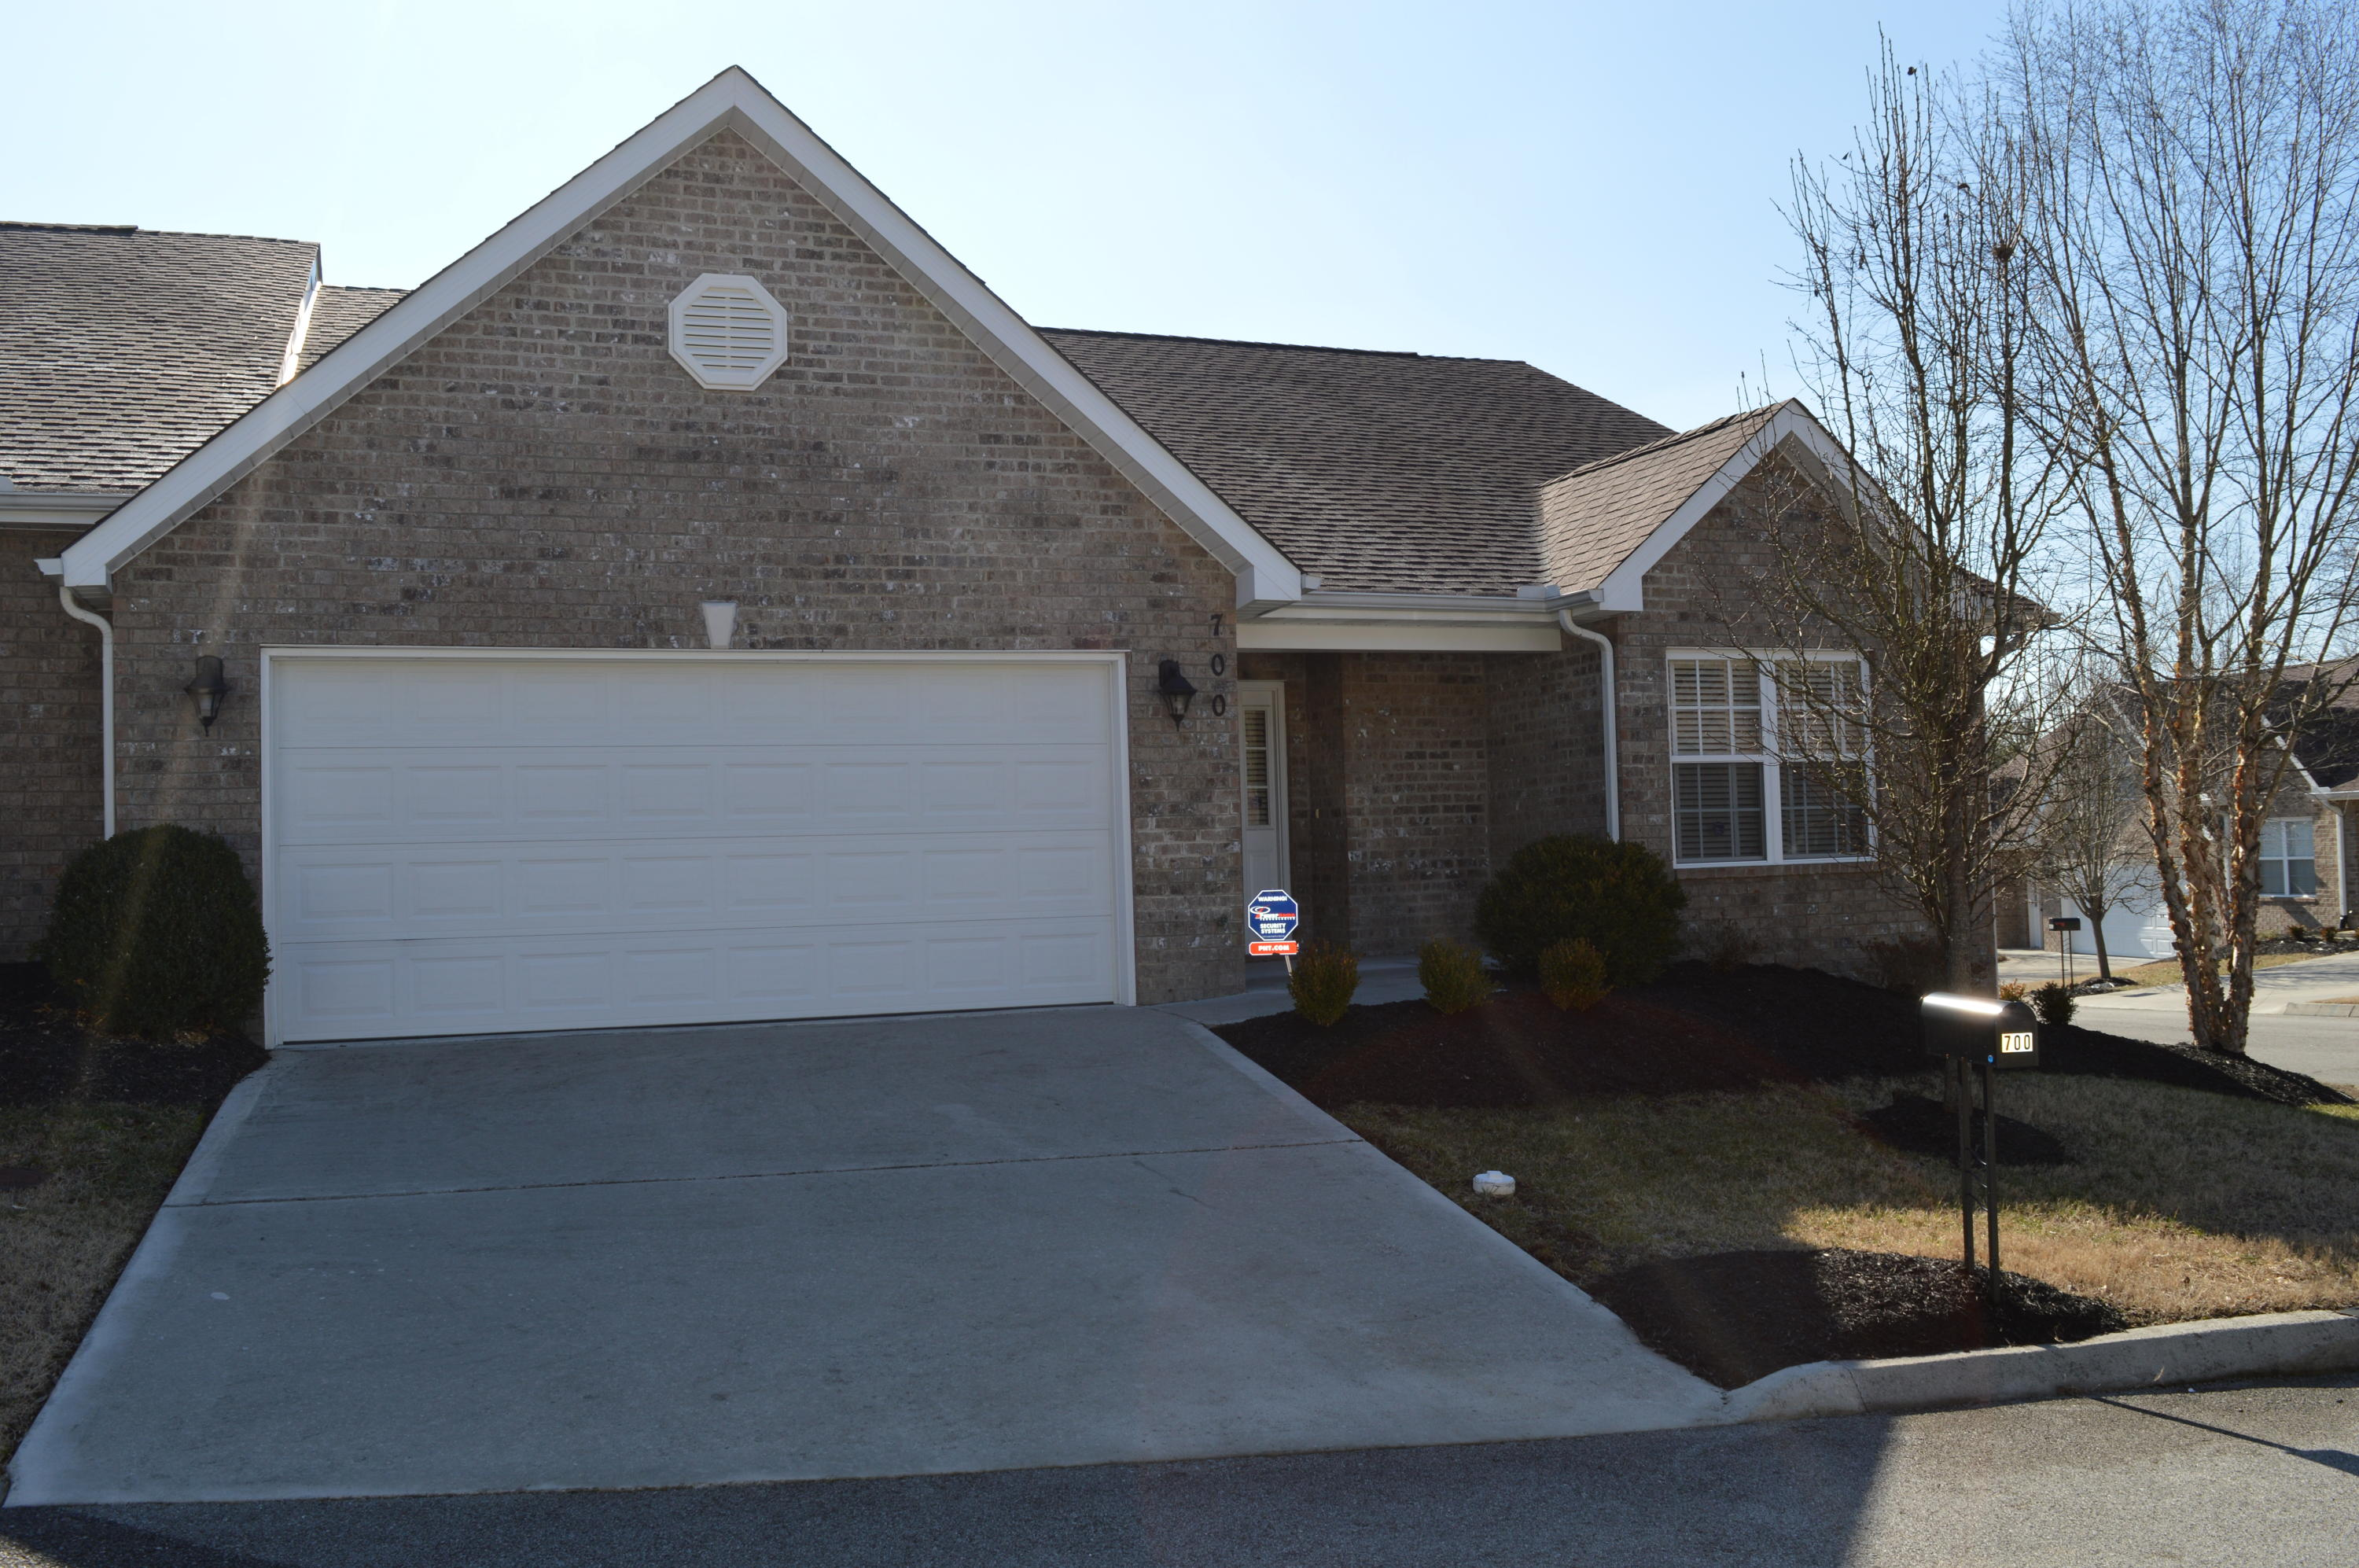 700 Sydney Bean Way, Knoxville, Tennessee 37918, 3 Bedrooms Bedrooms, ,2 BathroomsBathrooms,Single Family,For Sale,Sydney Bean,1030164